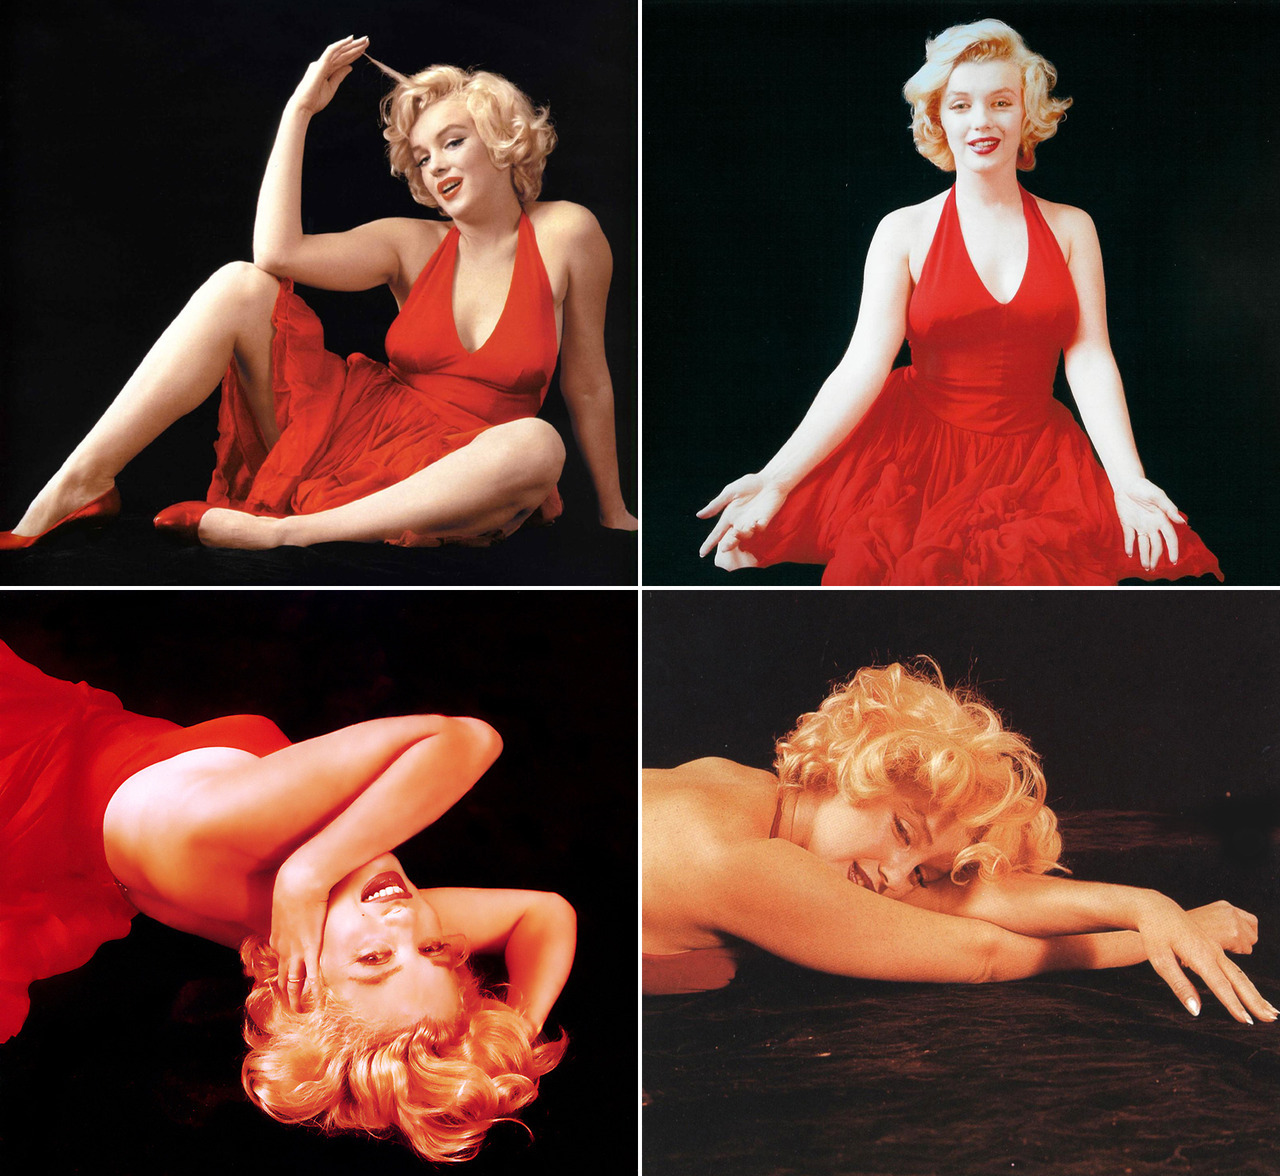 Marilyn Monroe by Milton Greene, 1957